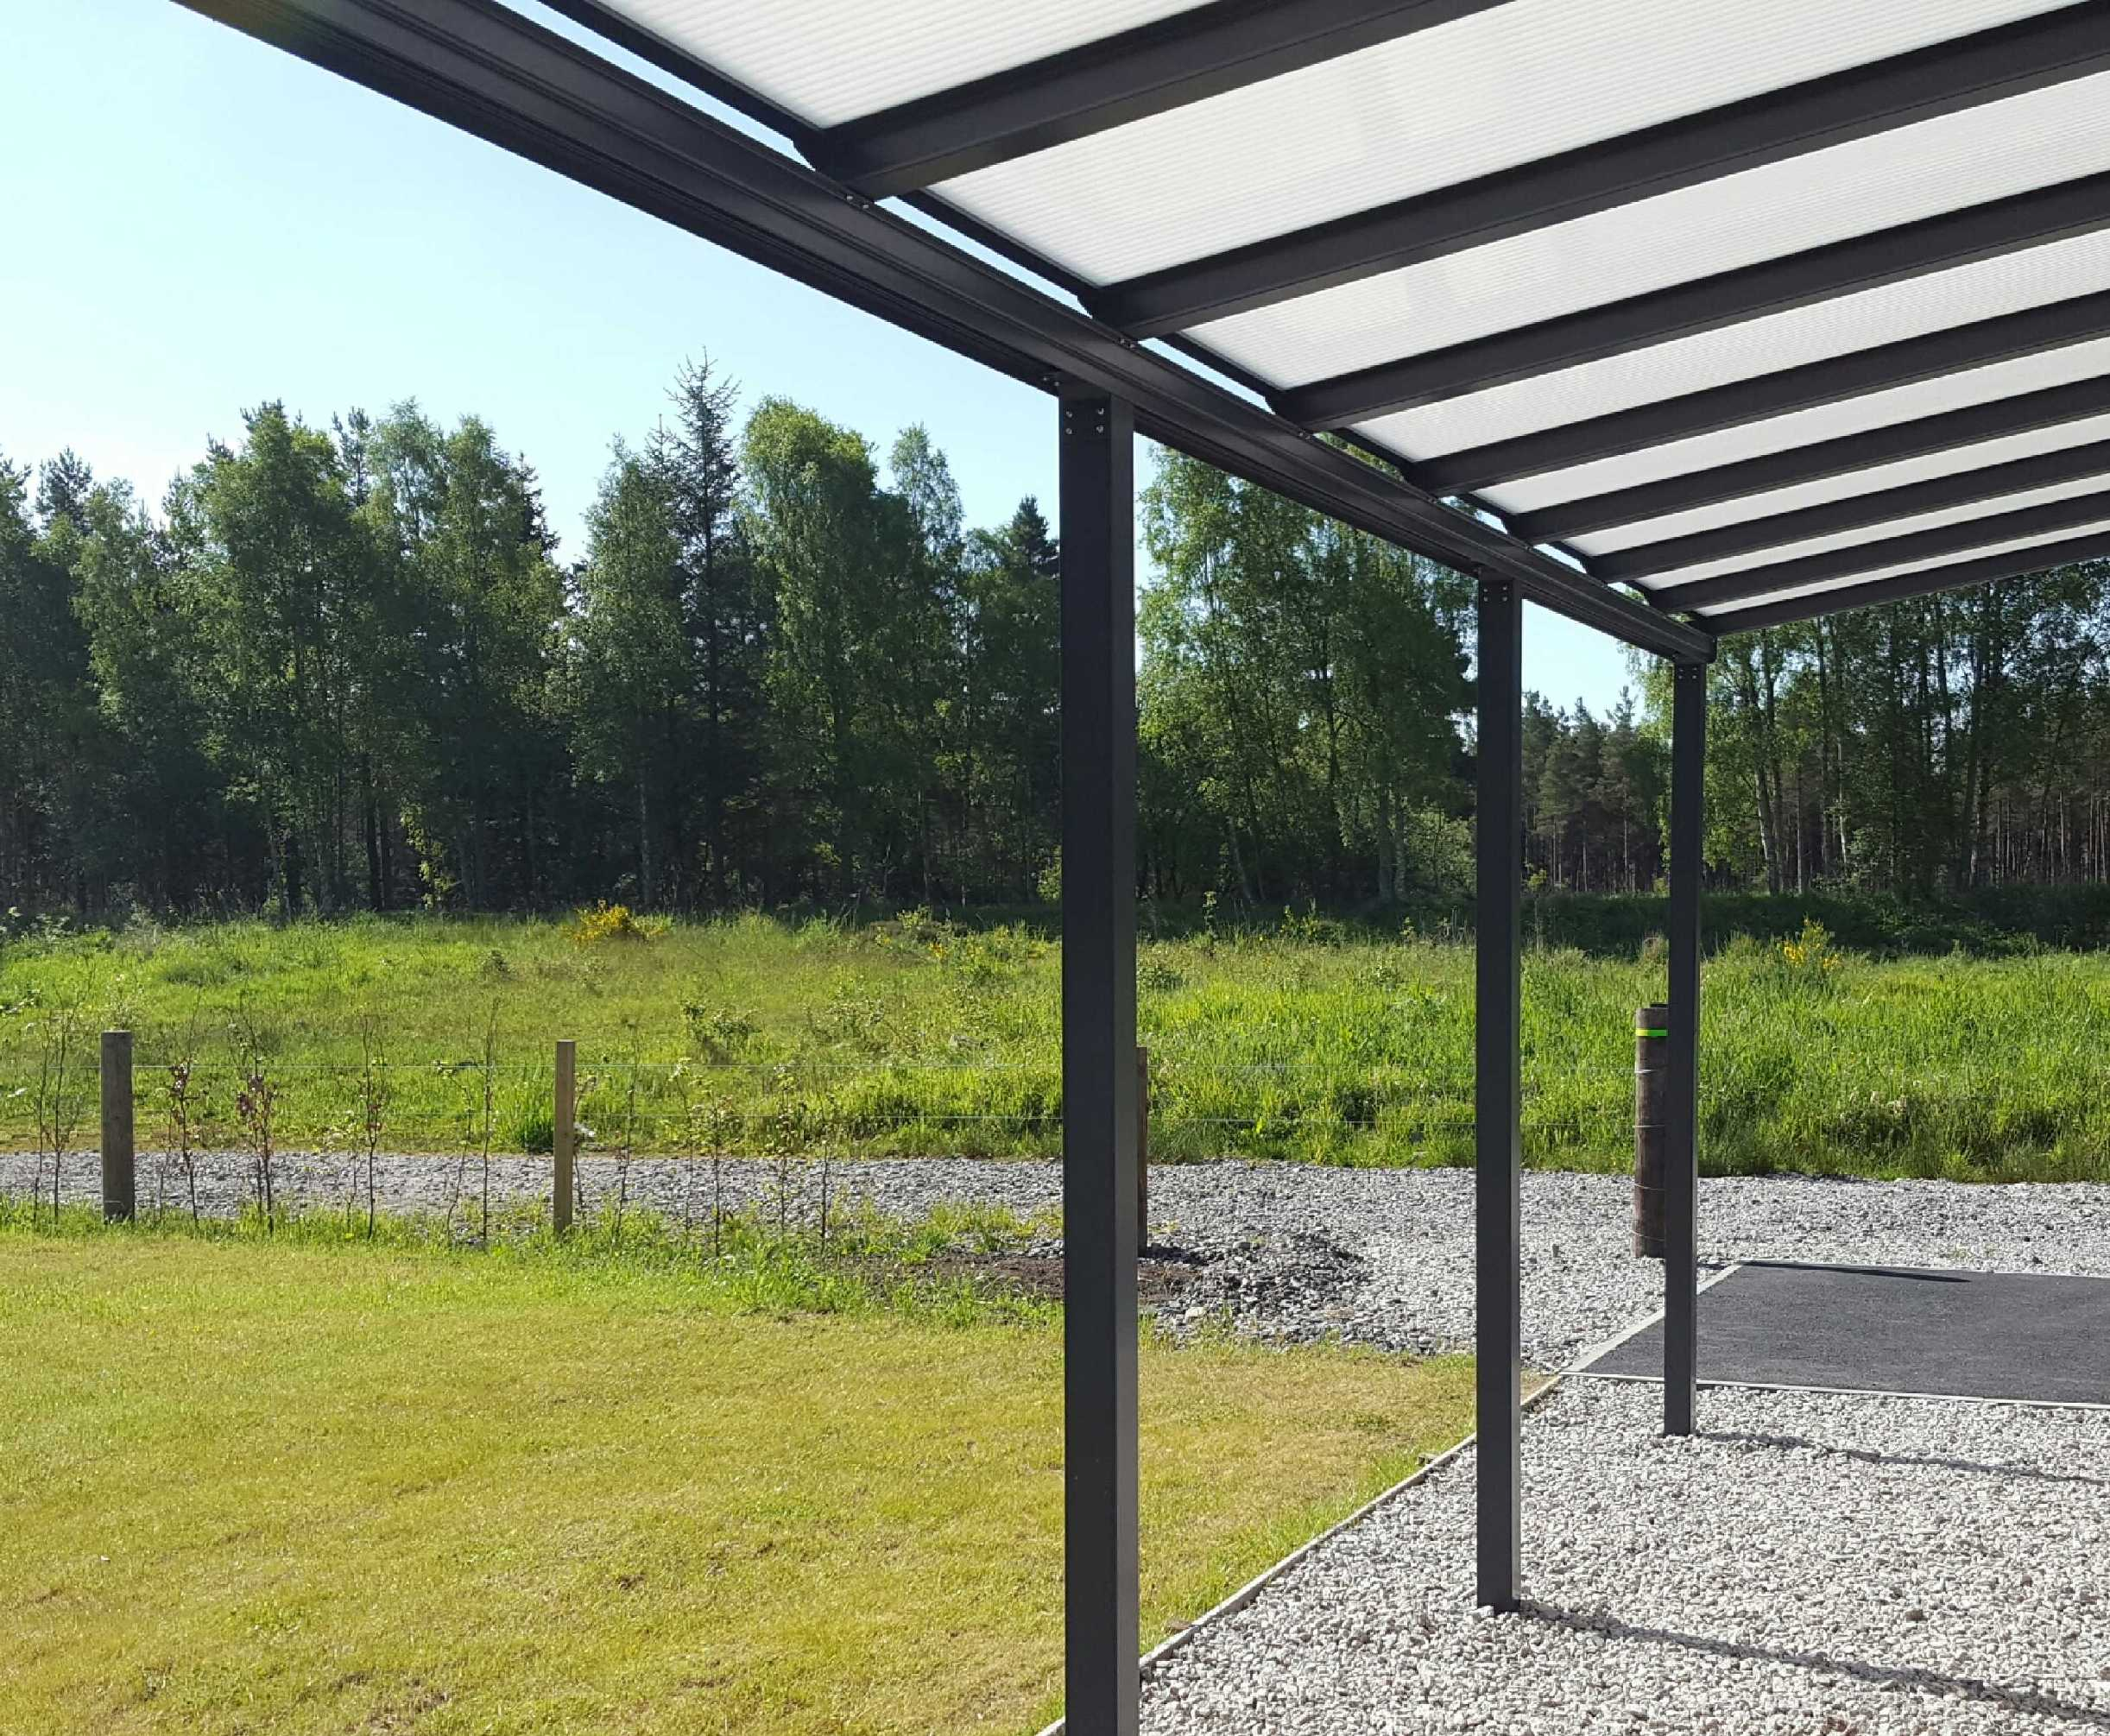 Omega SmartLean-To Canopy, Anthracite Grey, 16mm Polycarbonate Glazing - 9.5m (W) x 2.0m (P), (5) Supporting Posts